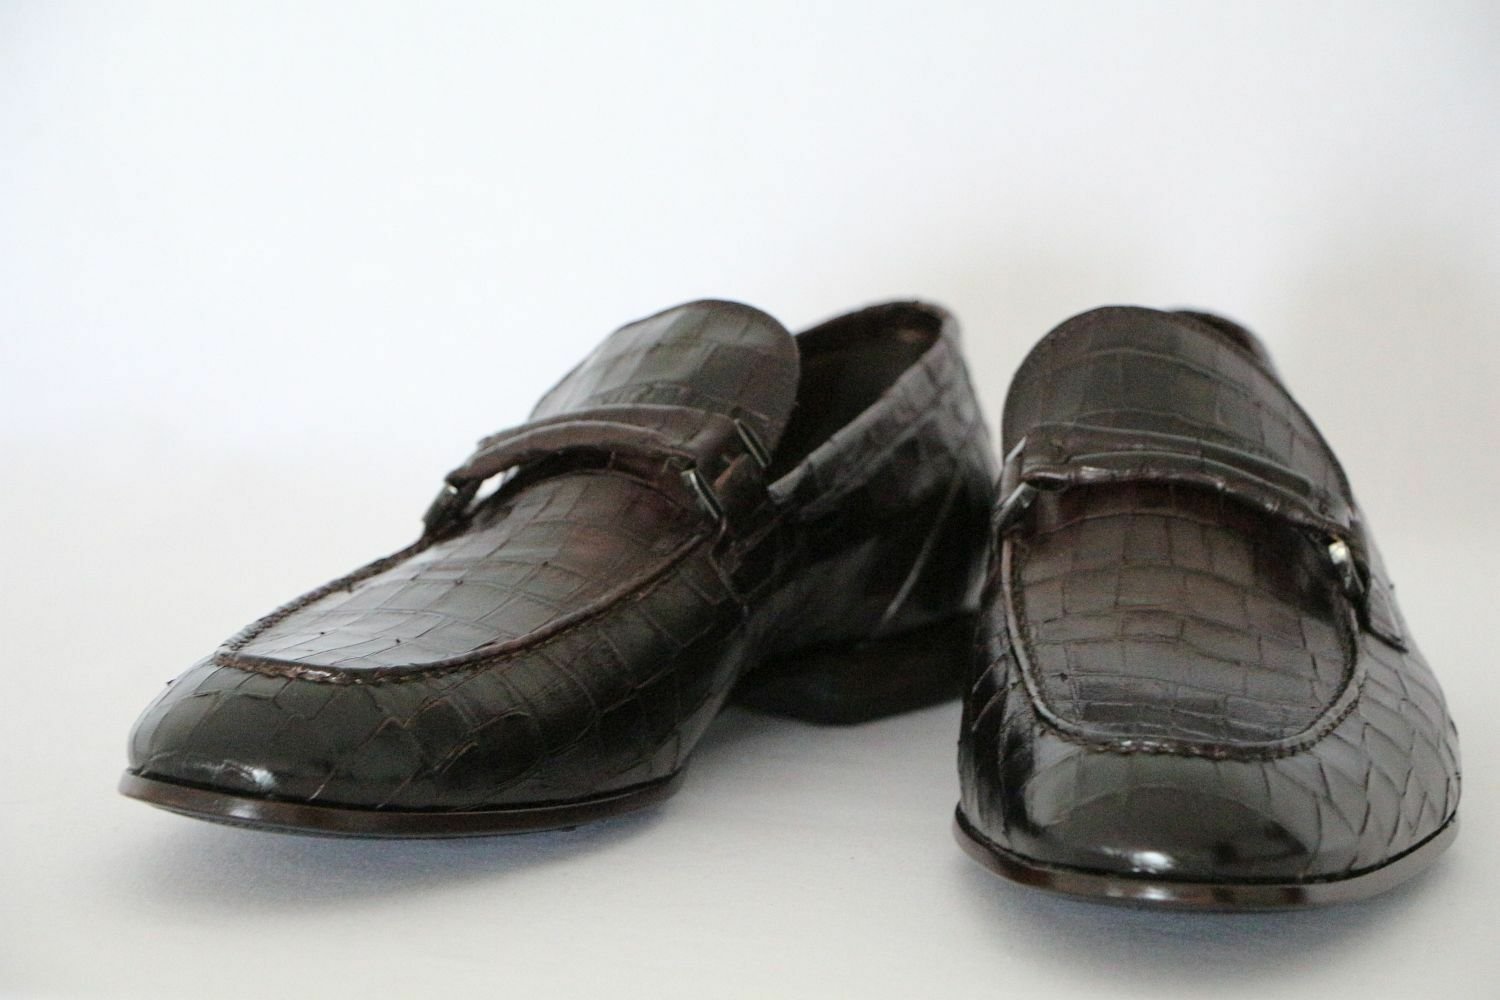 Hugo BOSS pennyloafer, Tg. 44//US UVP: 11, Made in Italy, UVP: 44//US db593c